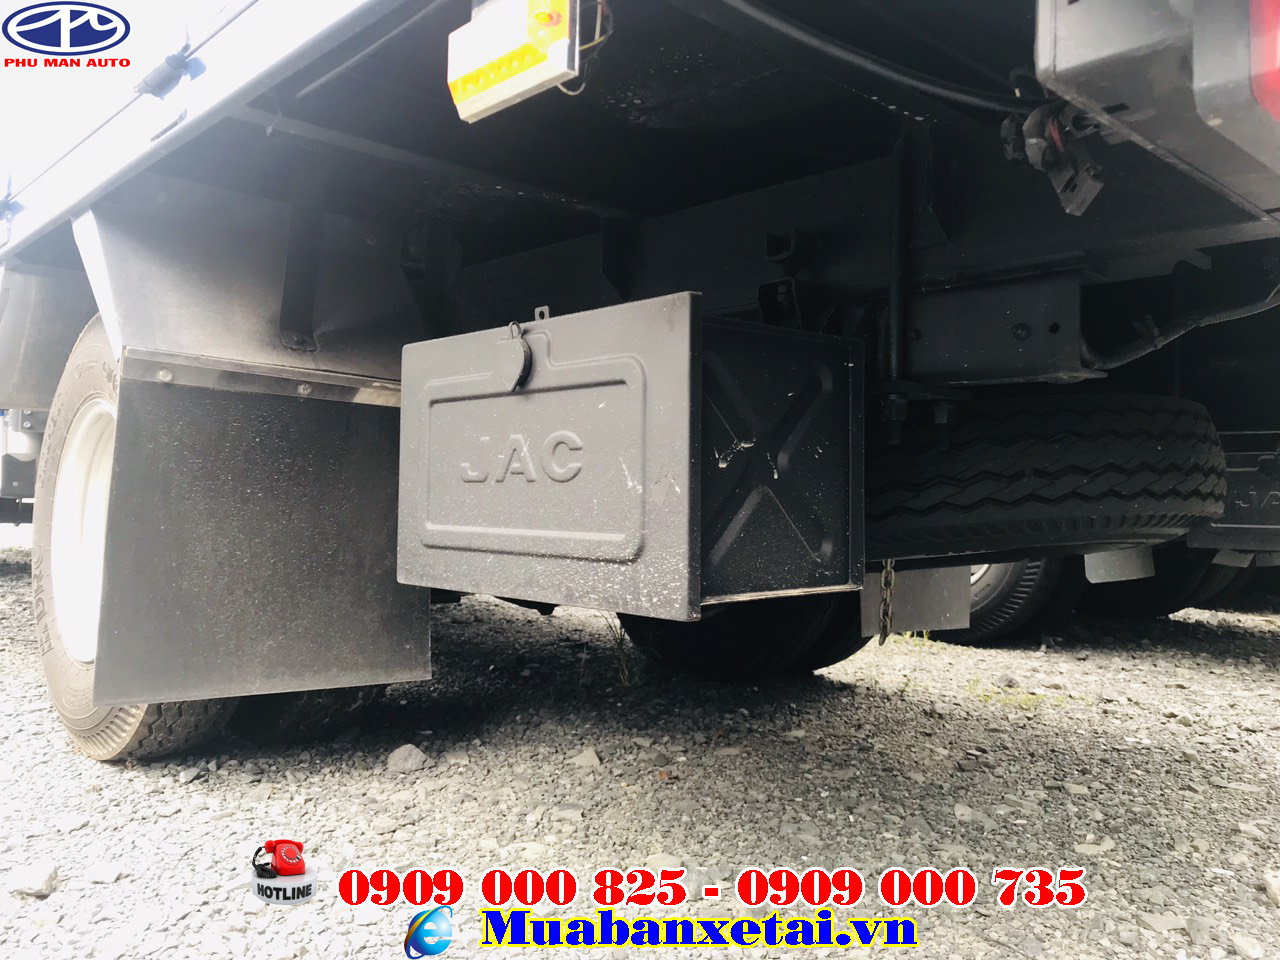 xe taie jac 990kg